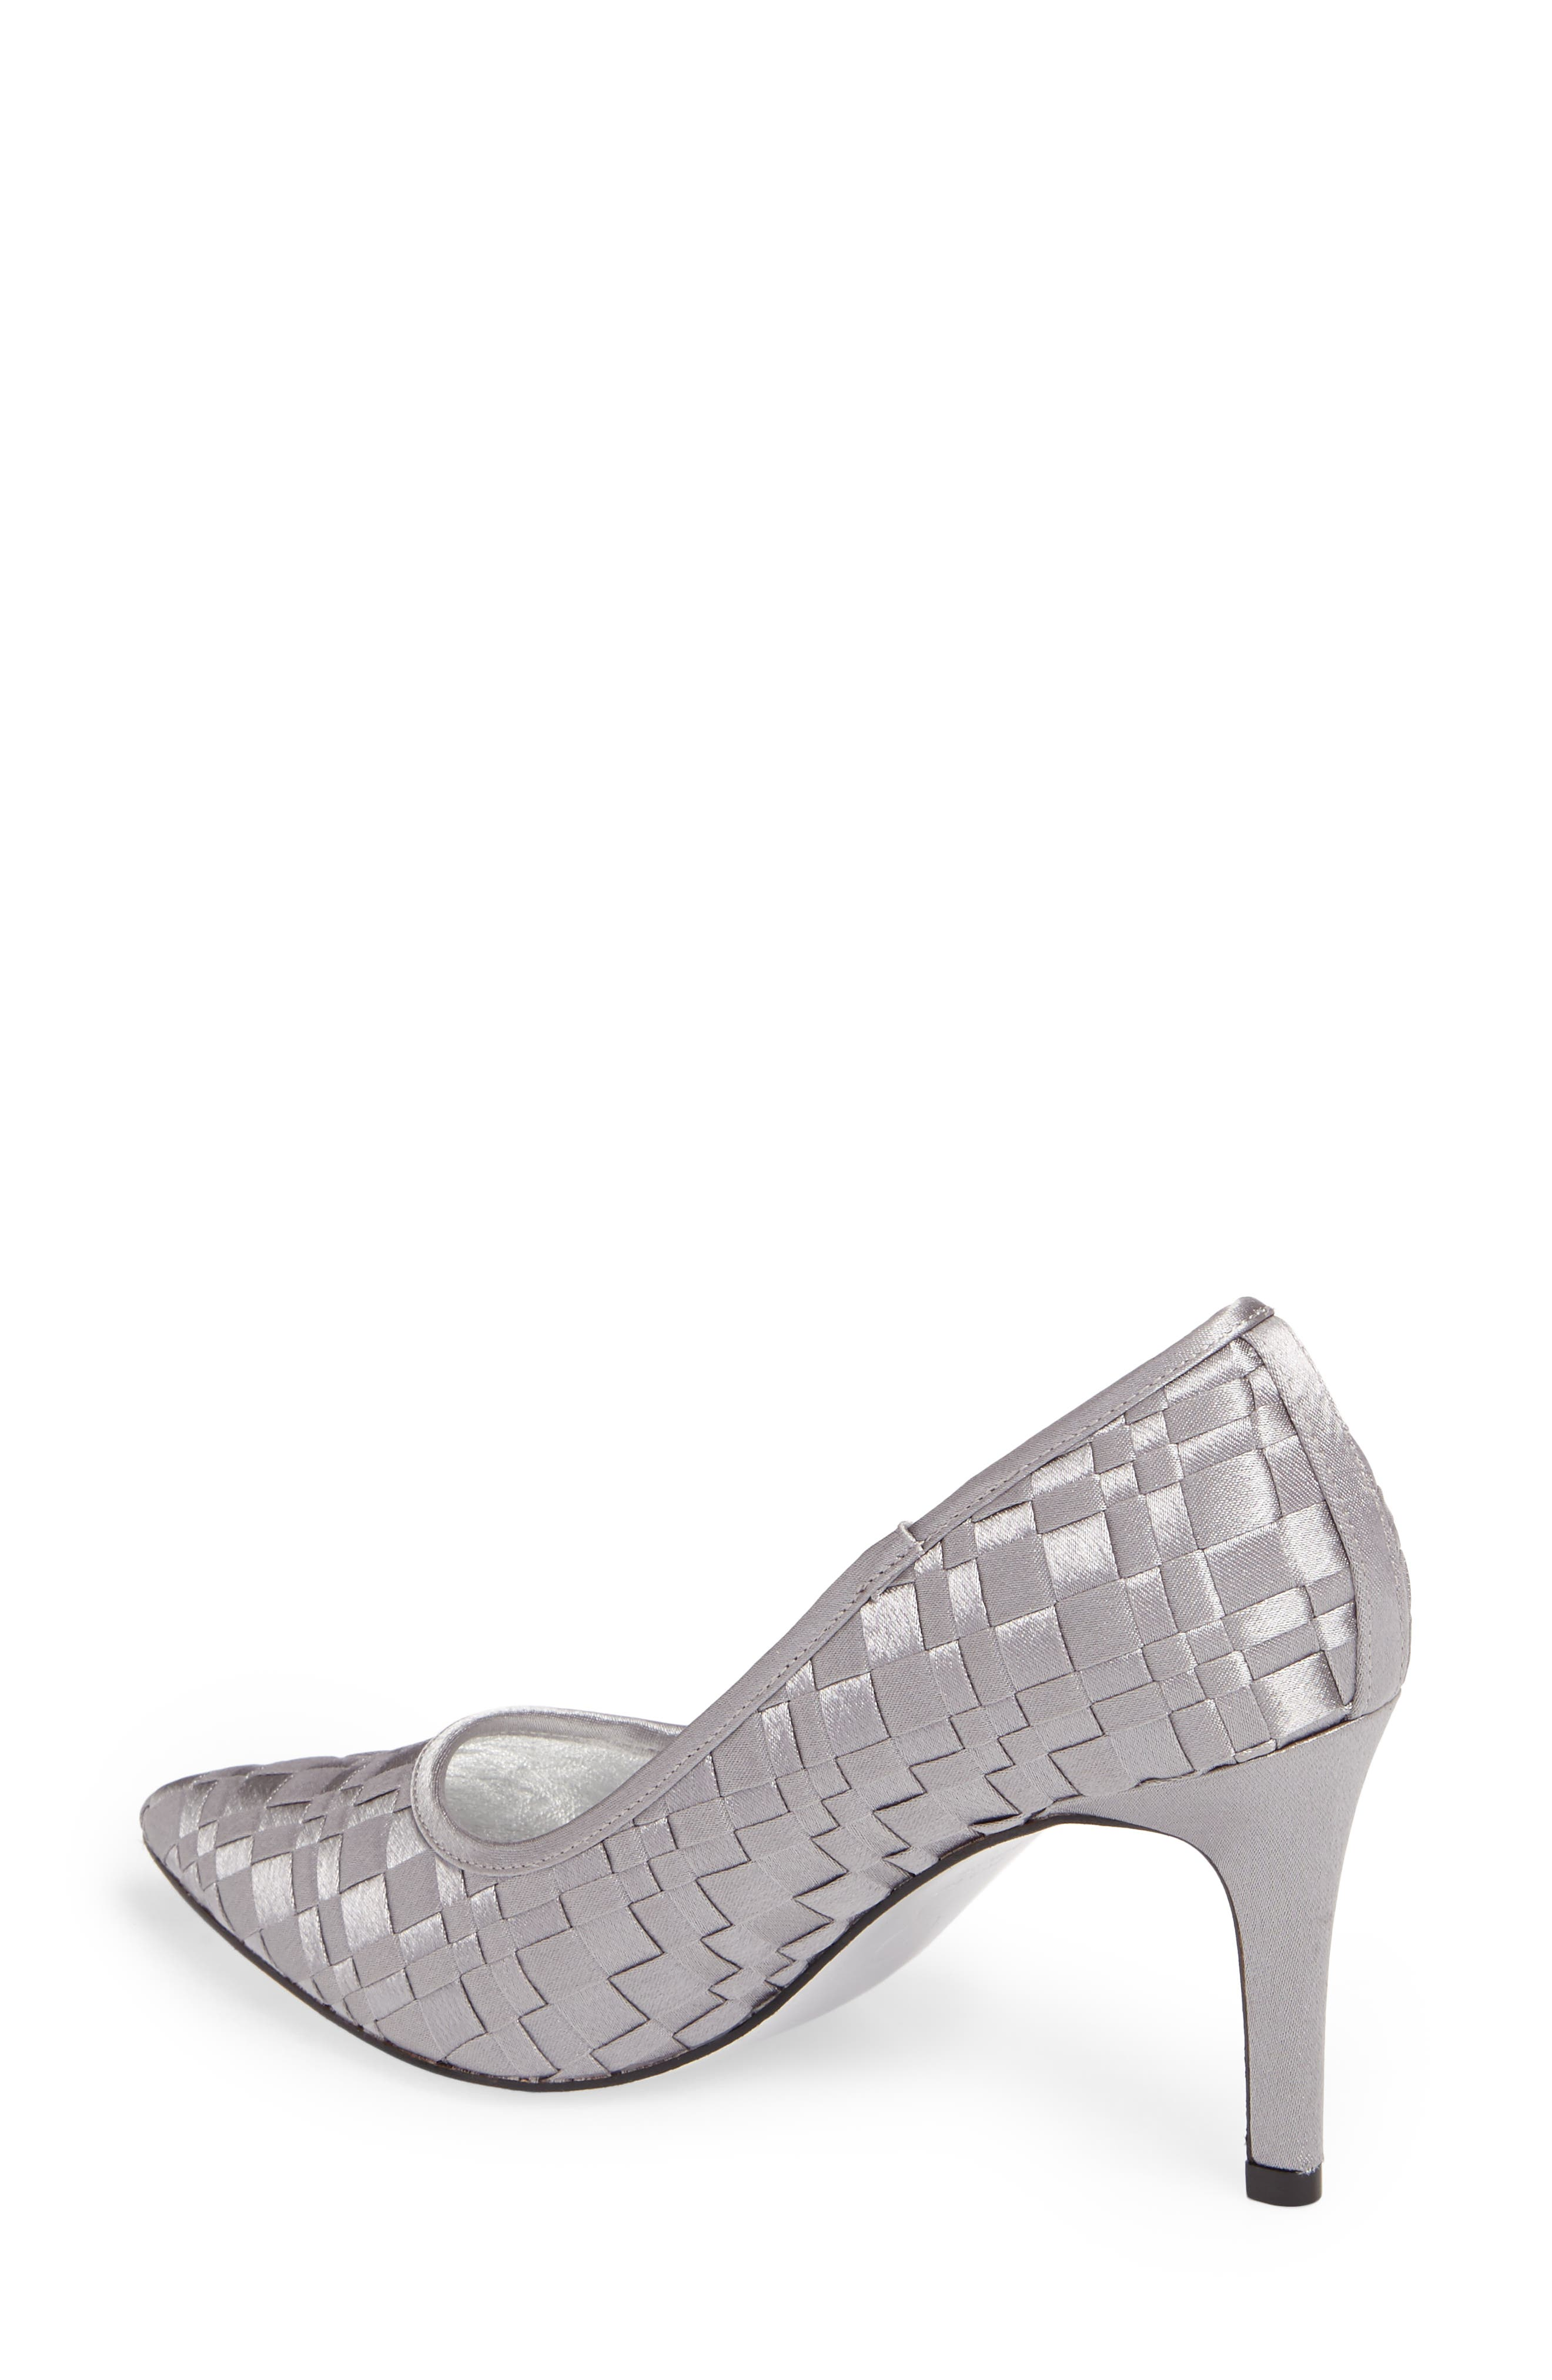 Hasting Pointy Toe Pump,                             Alternate thumbnail 2, color,                             020